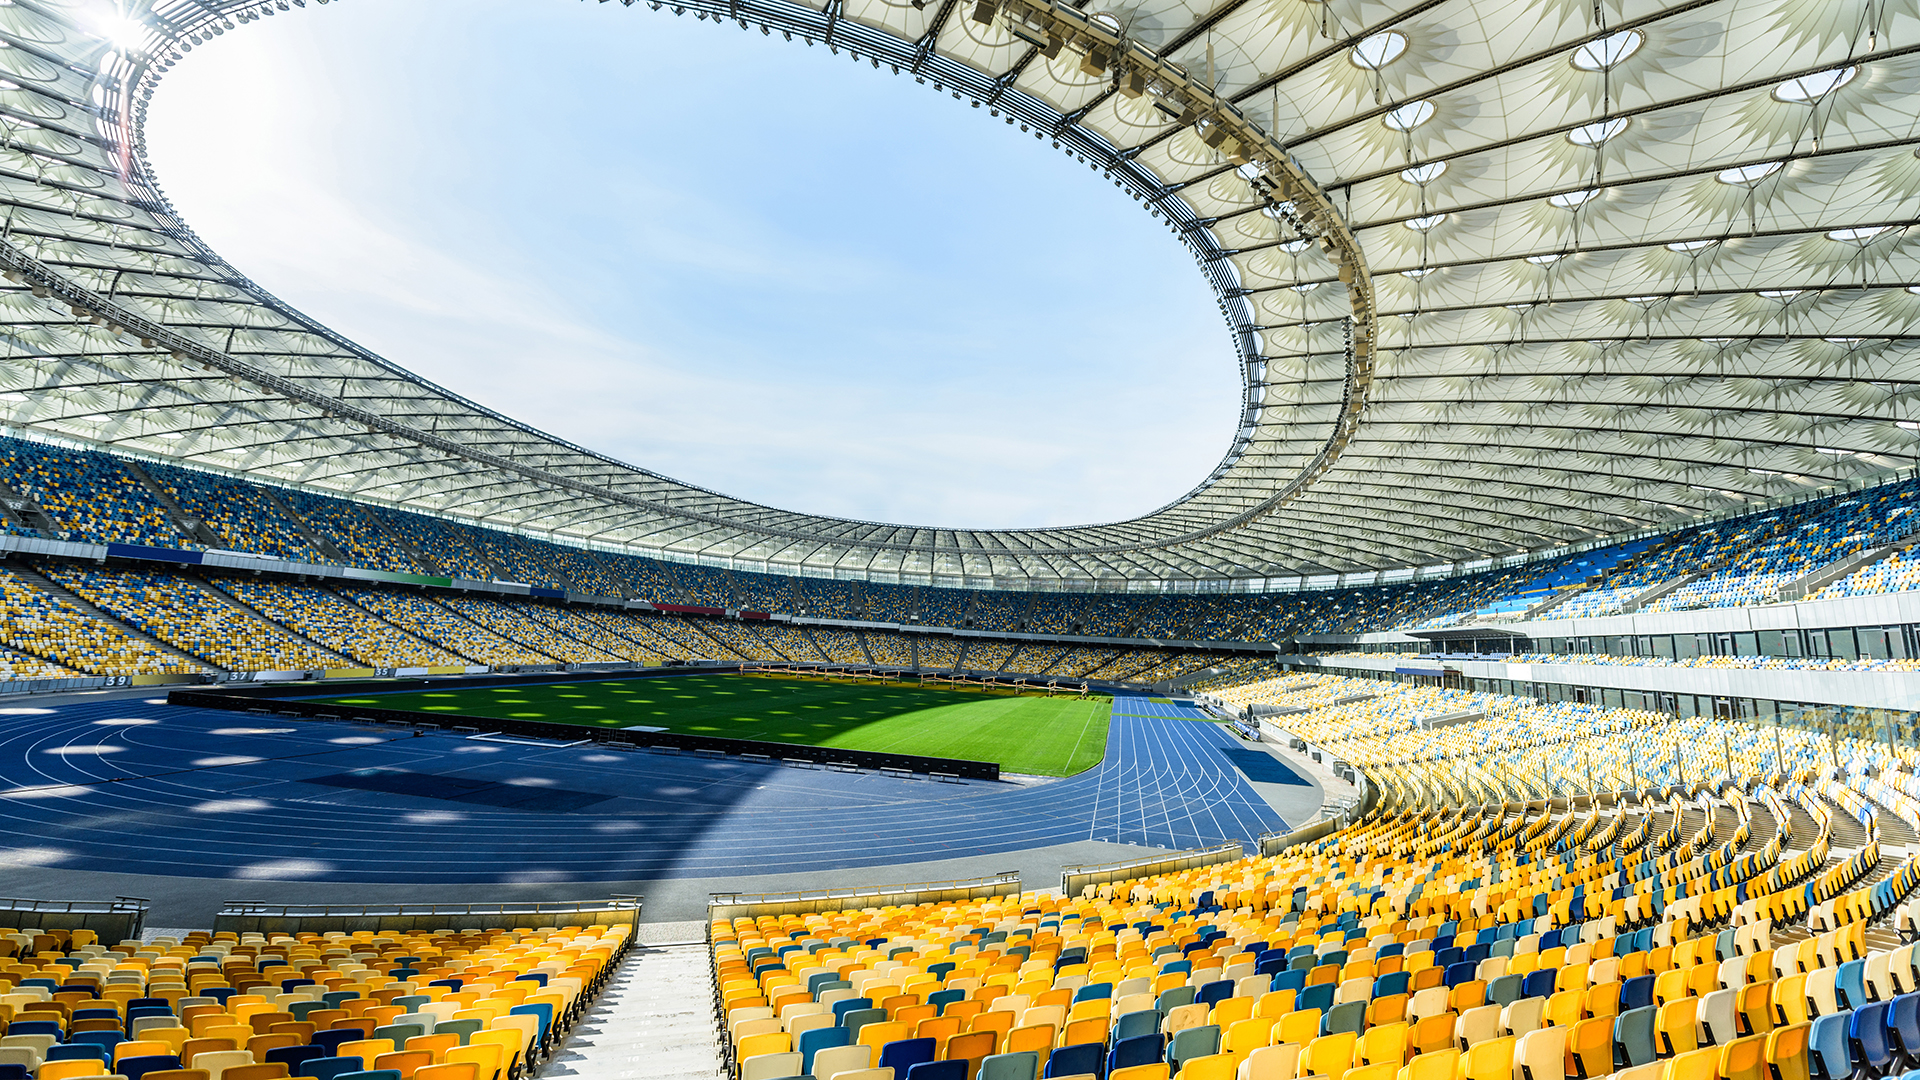 Stadium with seating and field